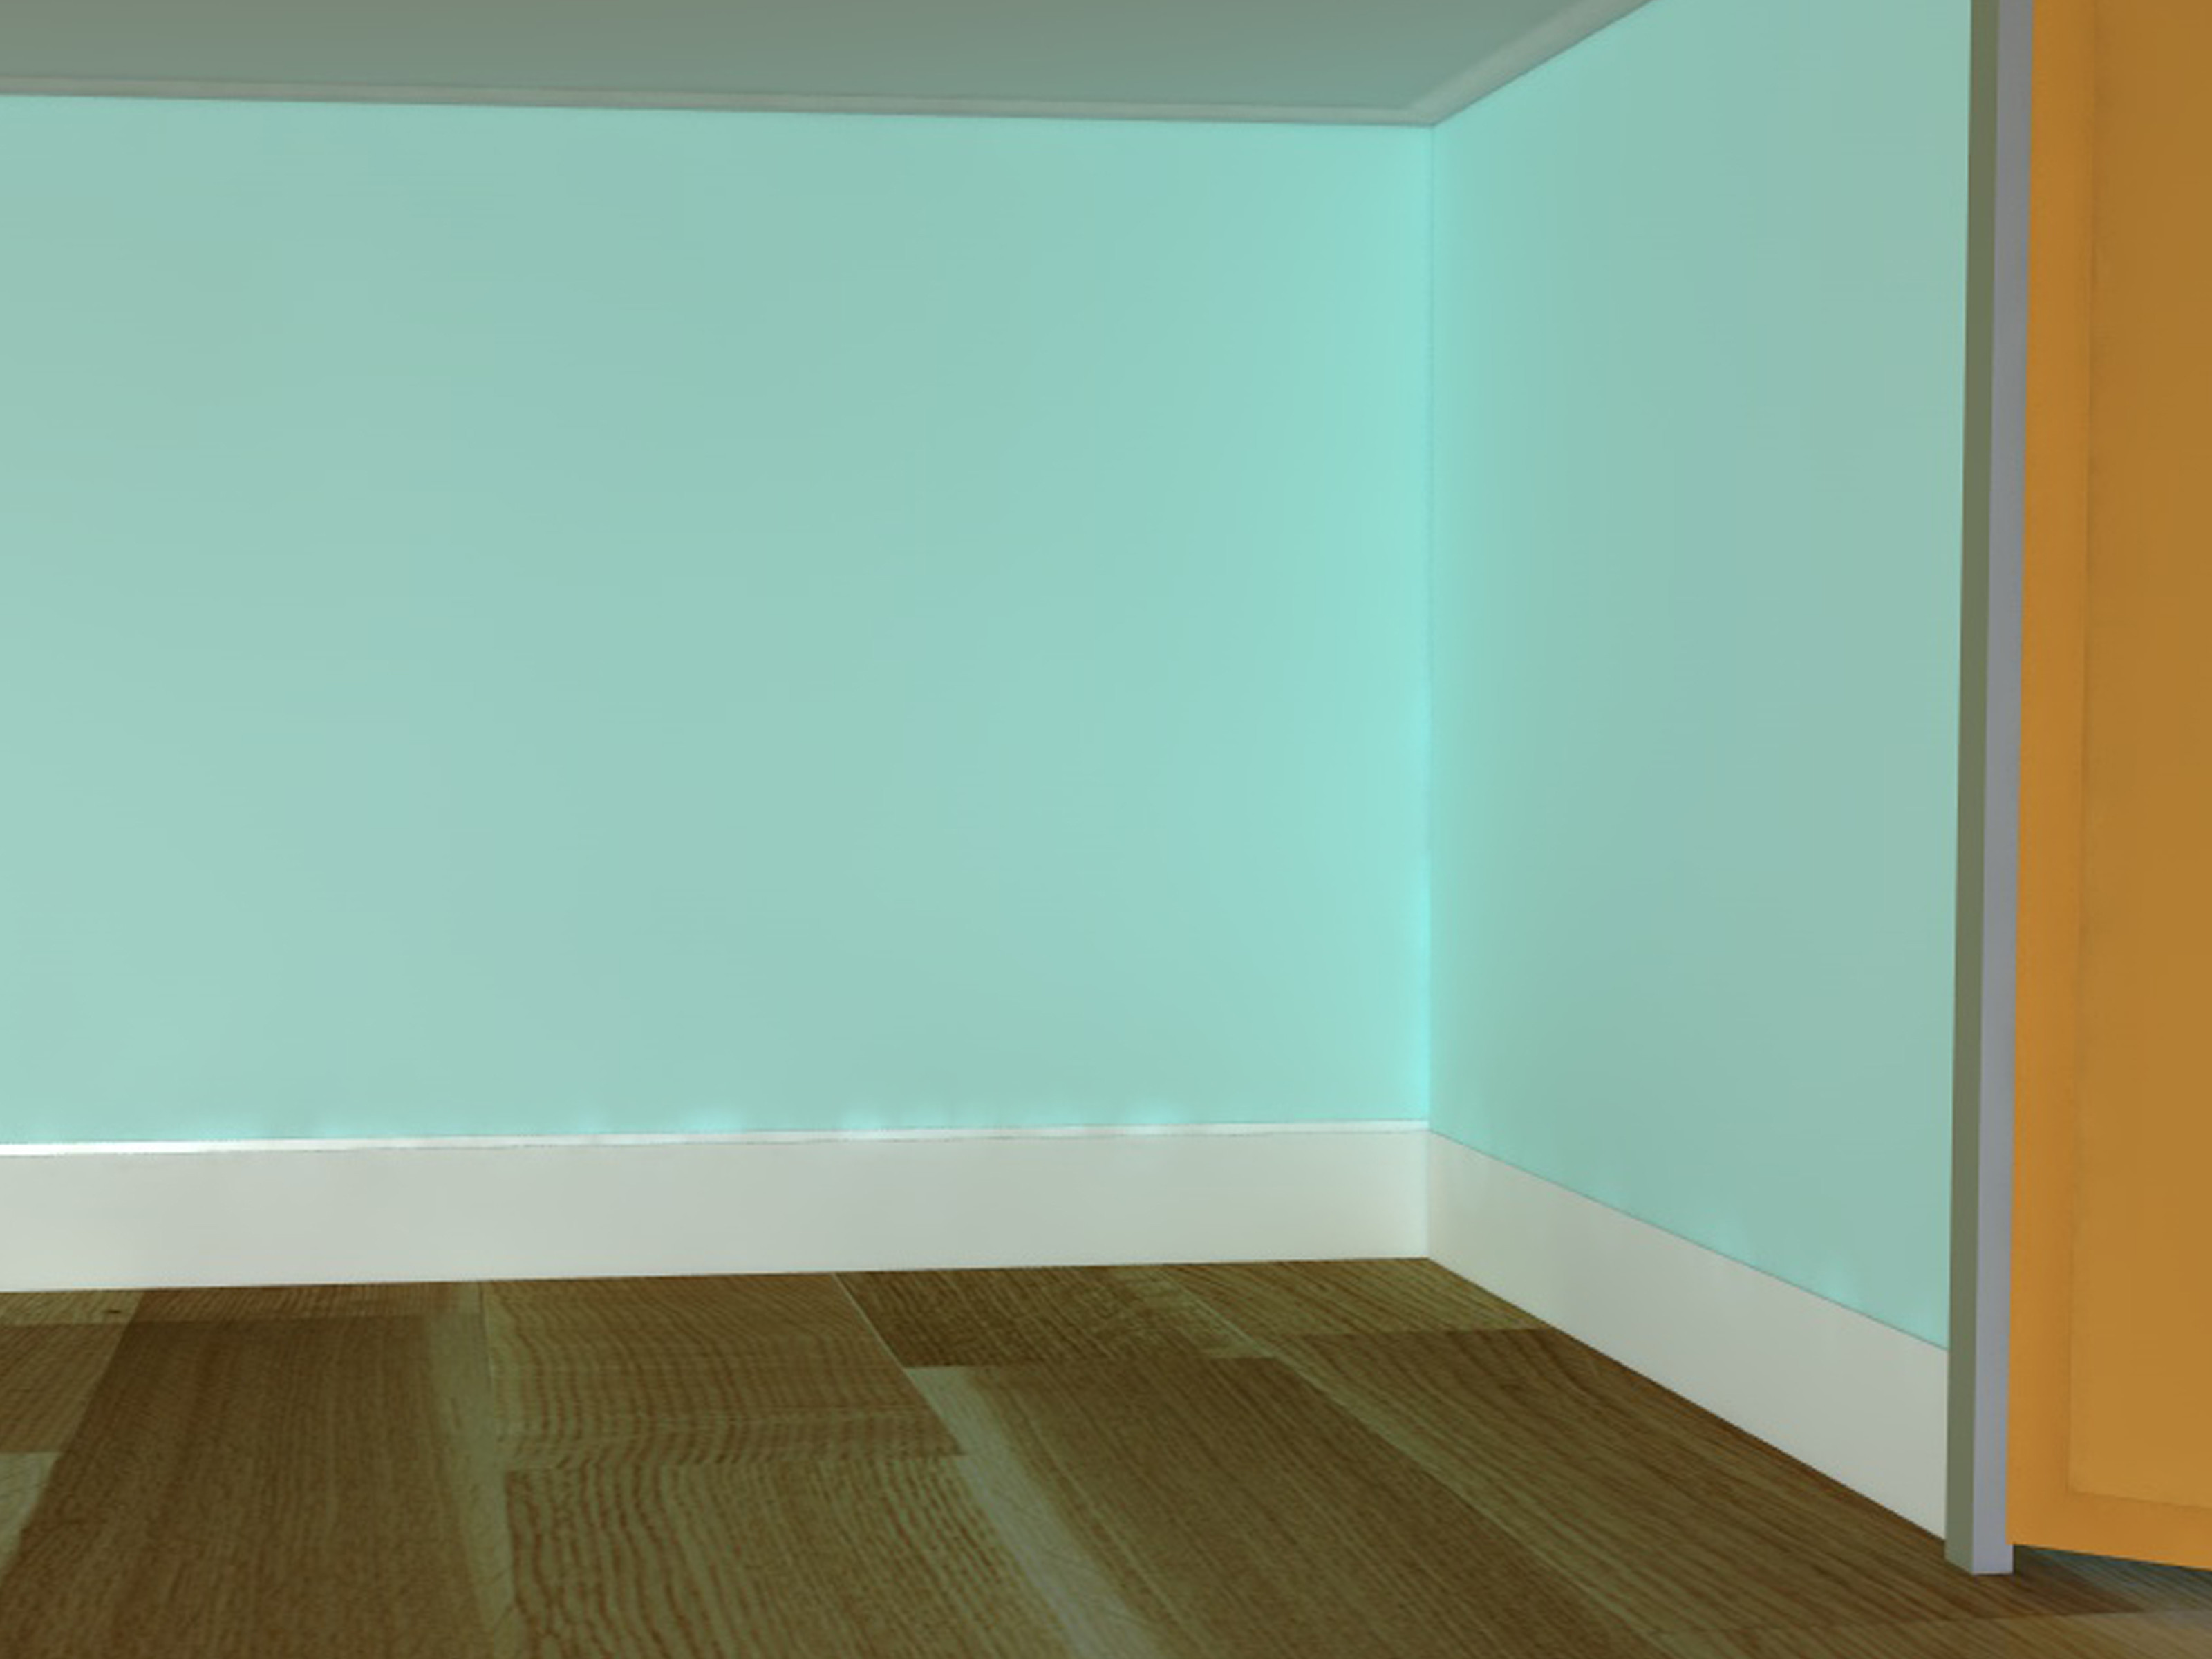 best deal hardwood floor moulding of how to paint a room with pictures wikihow within paint a room step 30